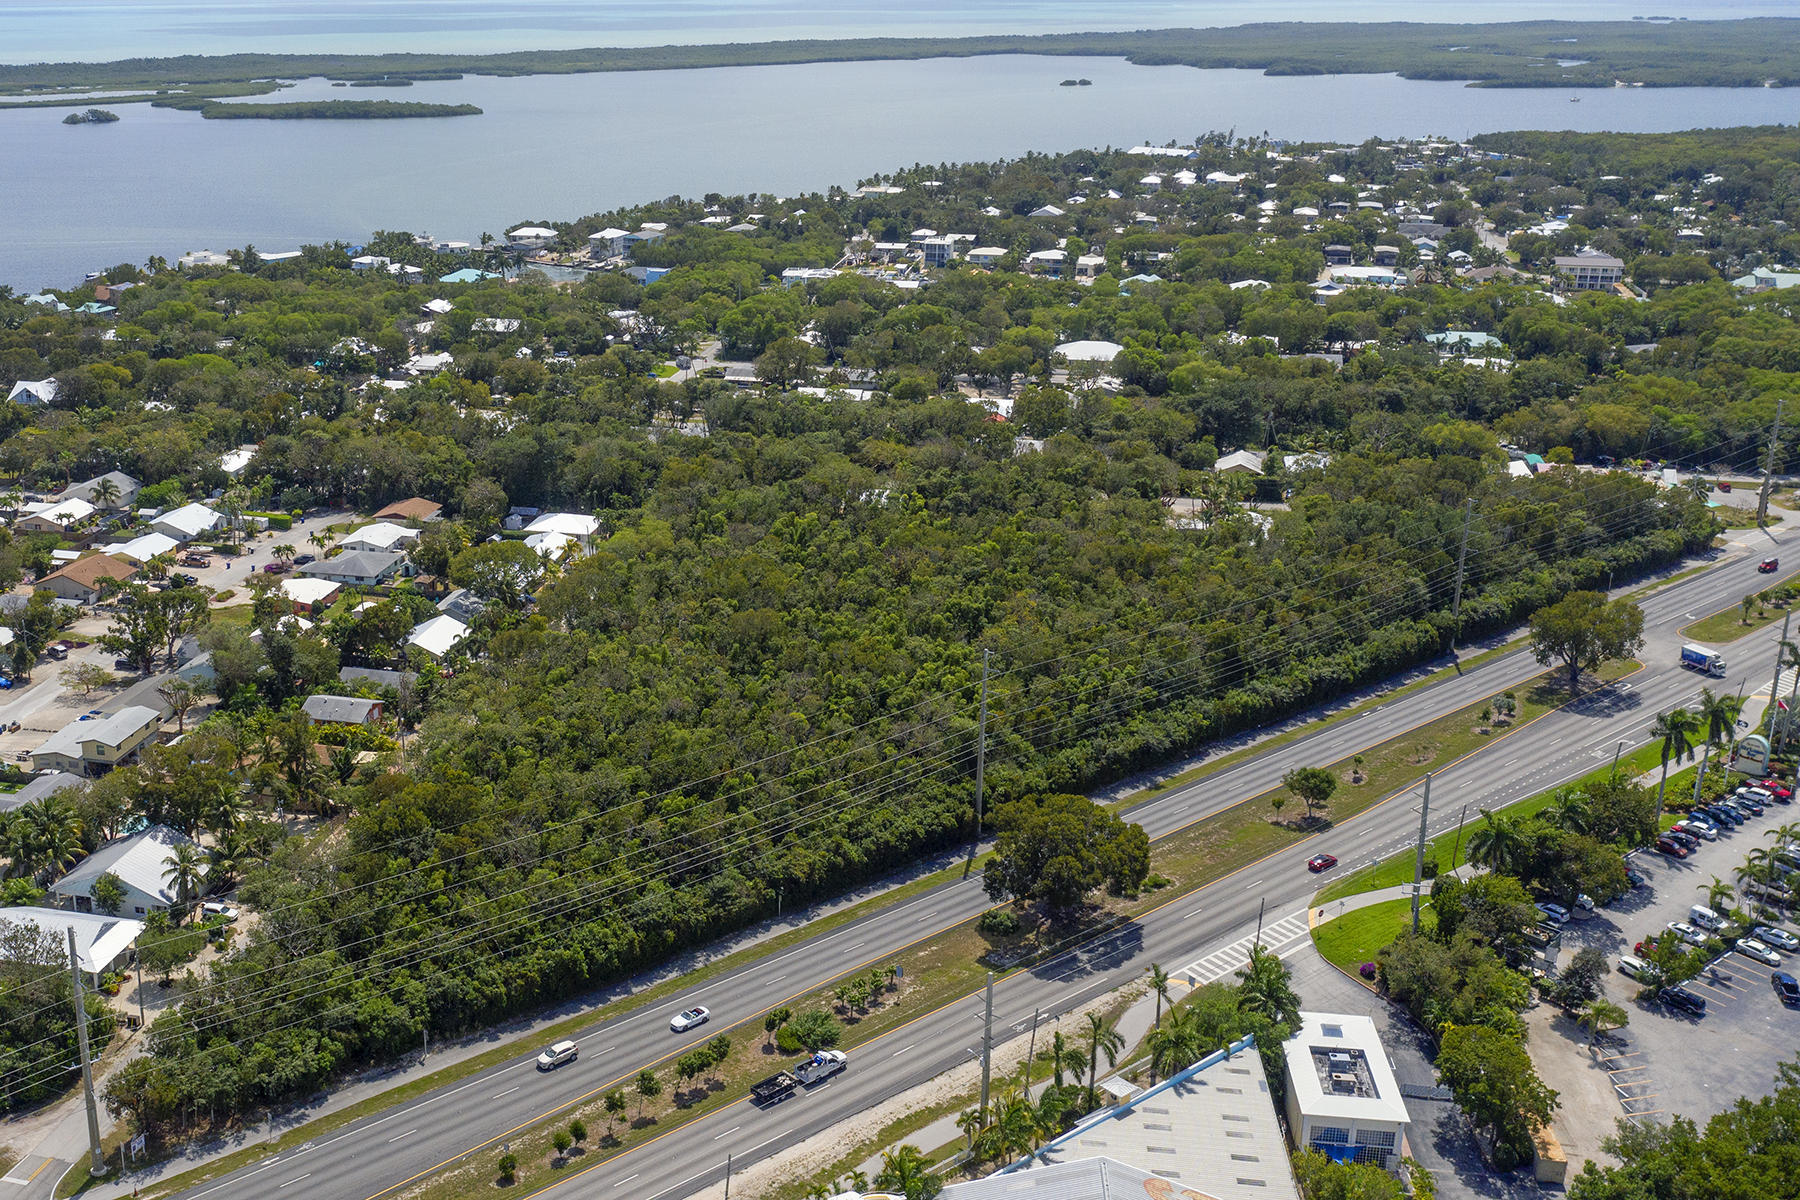 Land for Sale at 00 Overseas Highway, Key Largo, FL Key Largo, Florida 33037 United States